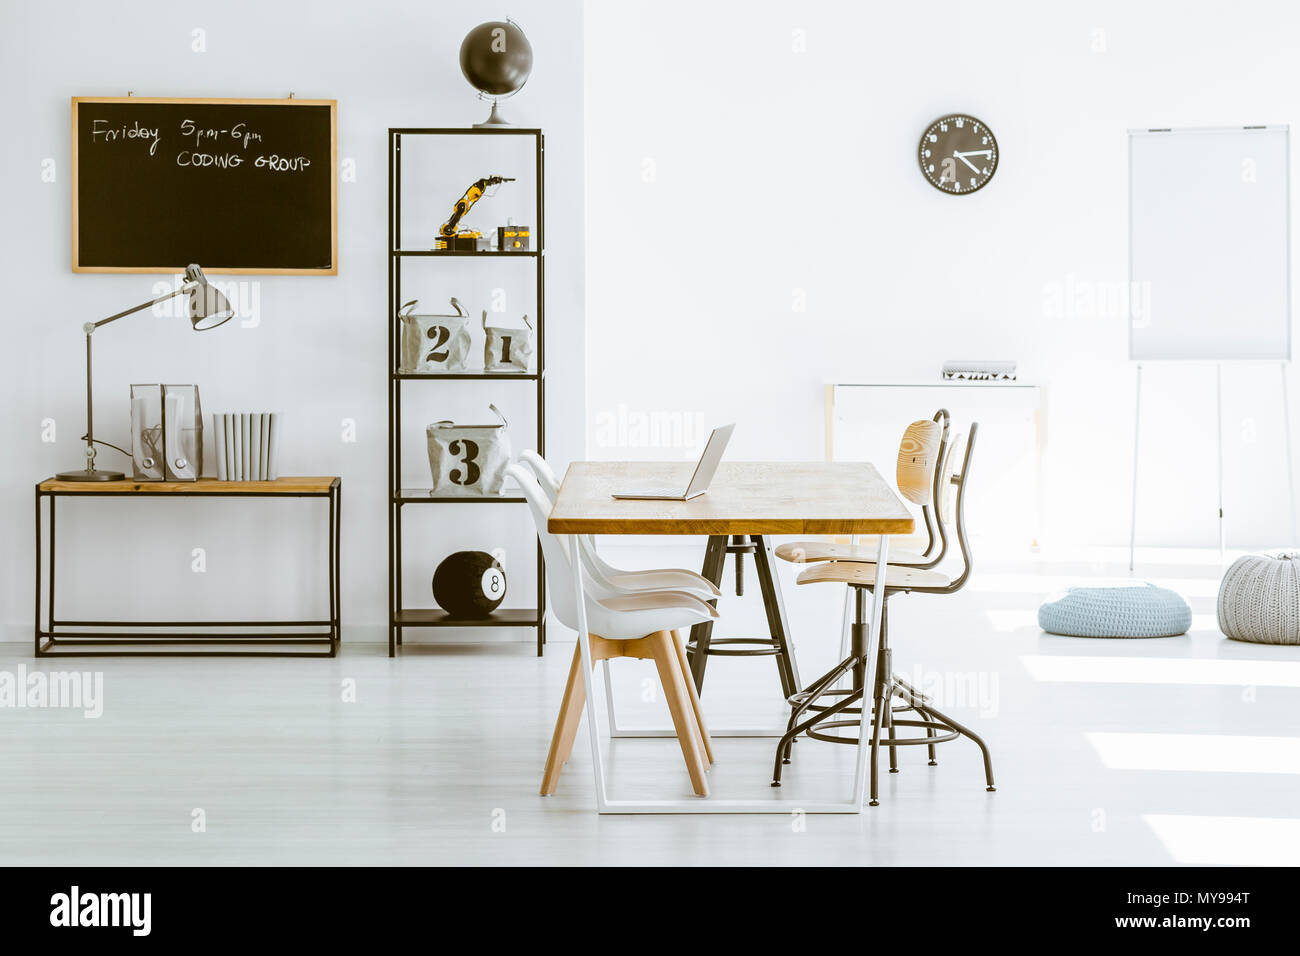 Bright classroom with laptop on desk and blackboard on the wall - Stock Image